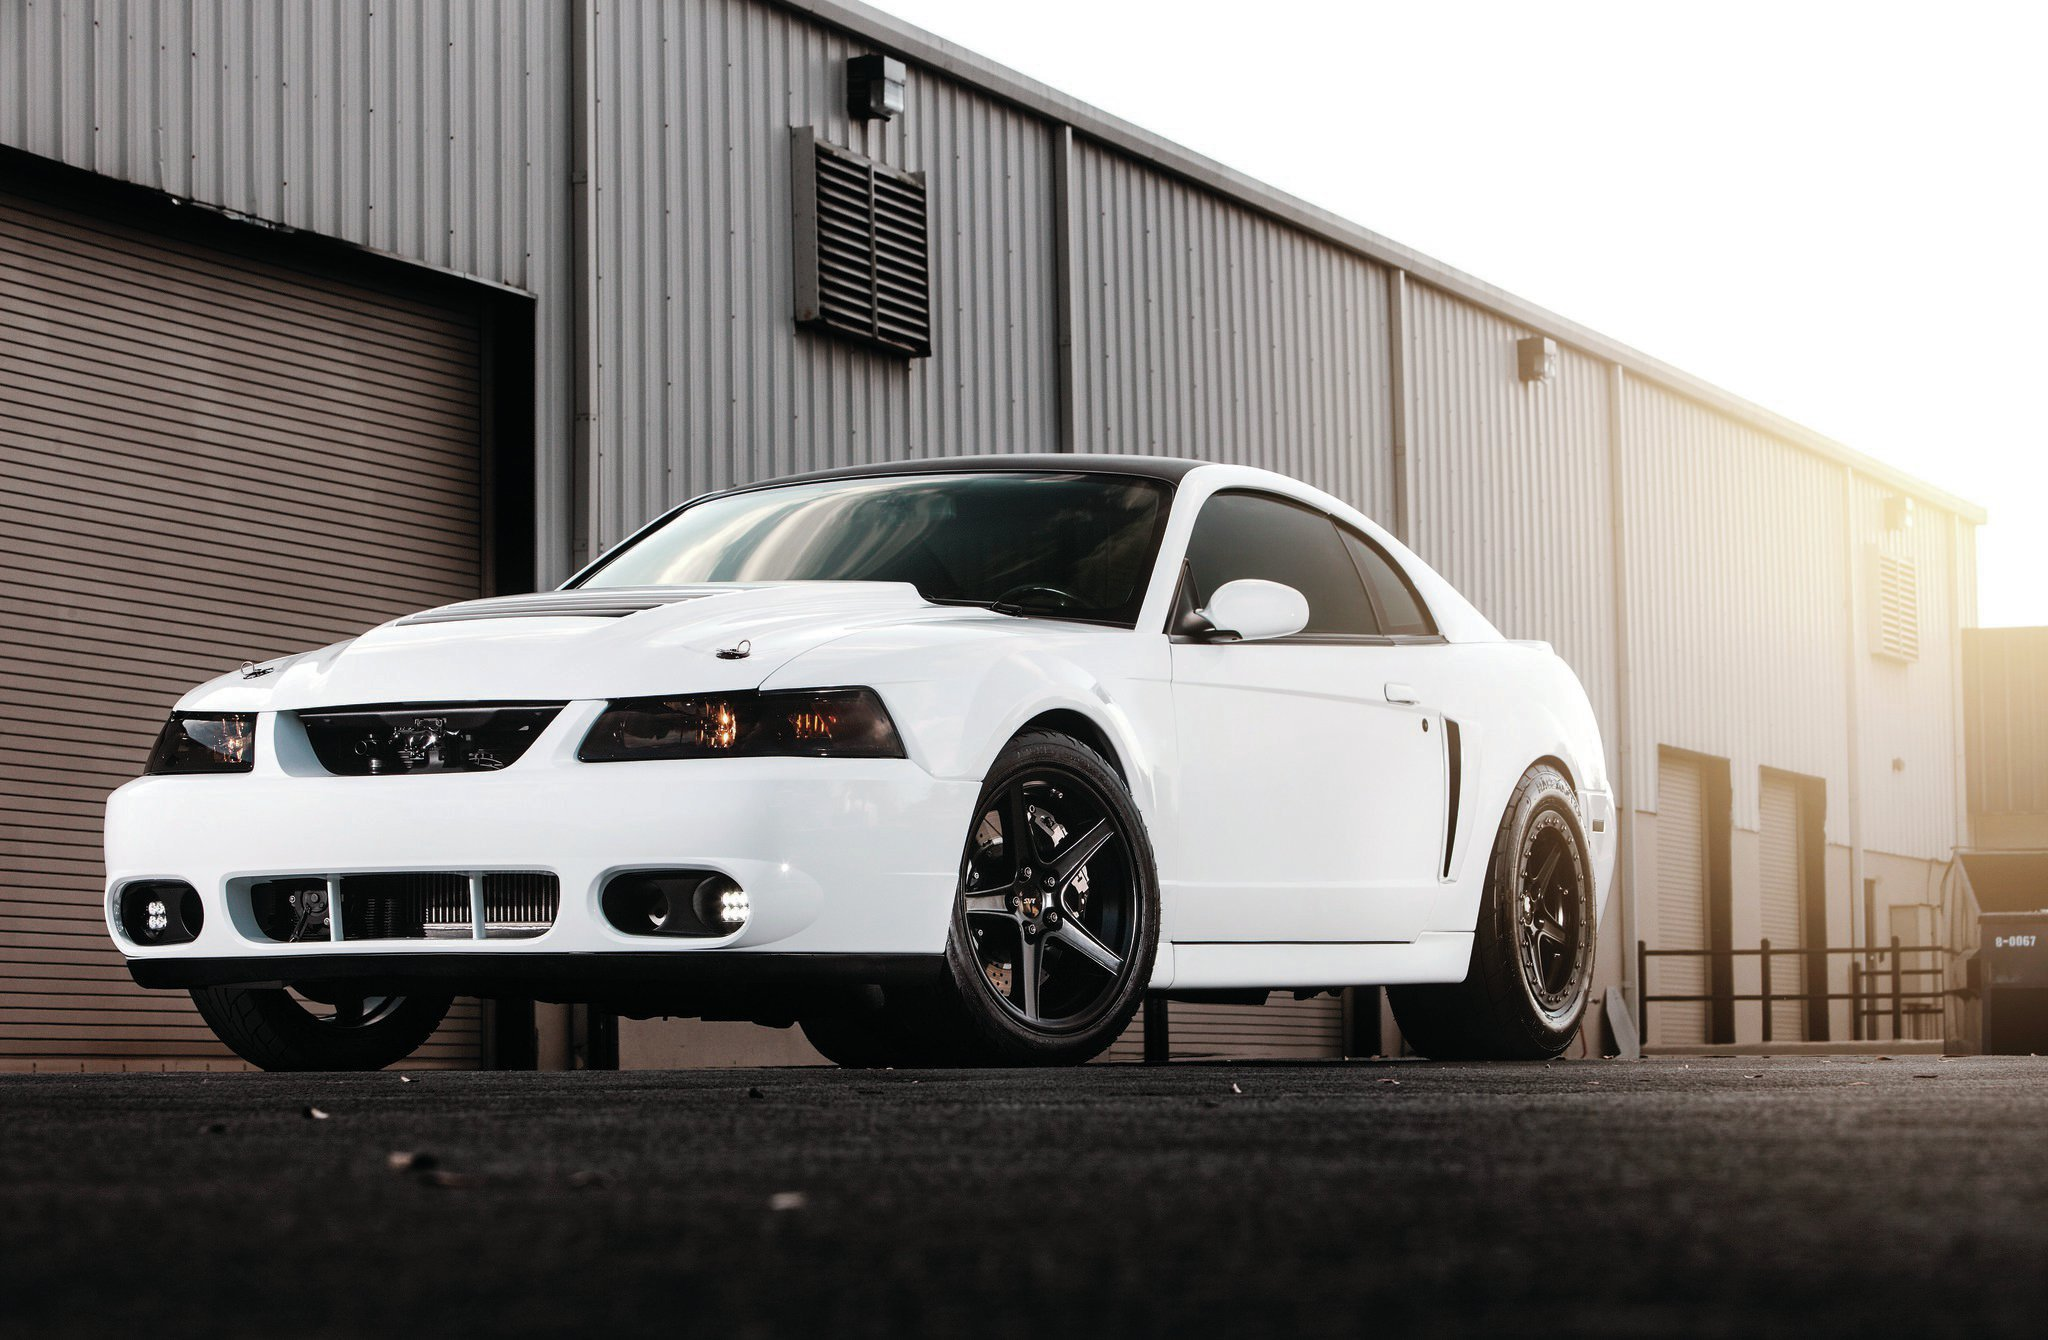 2000 Ford Mustang #19